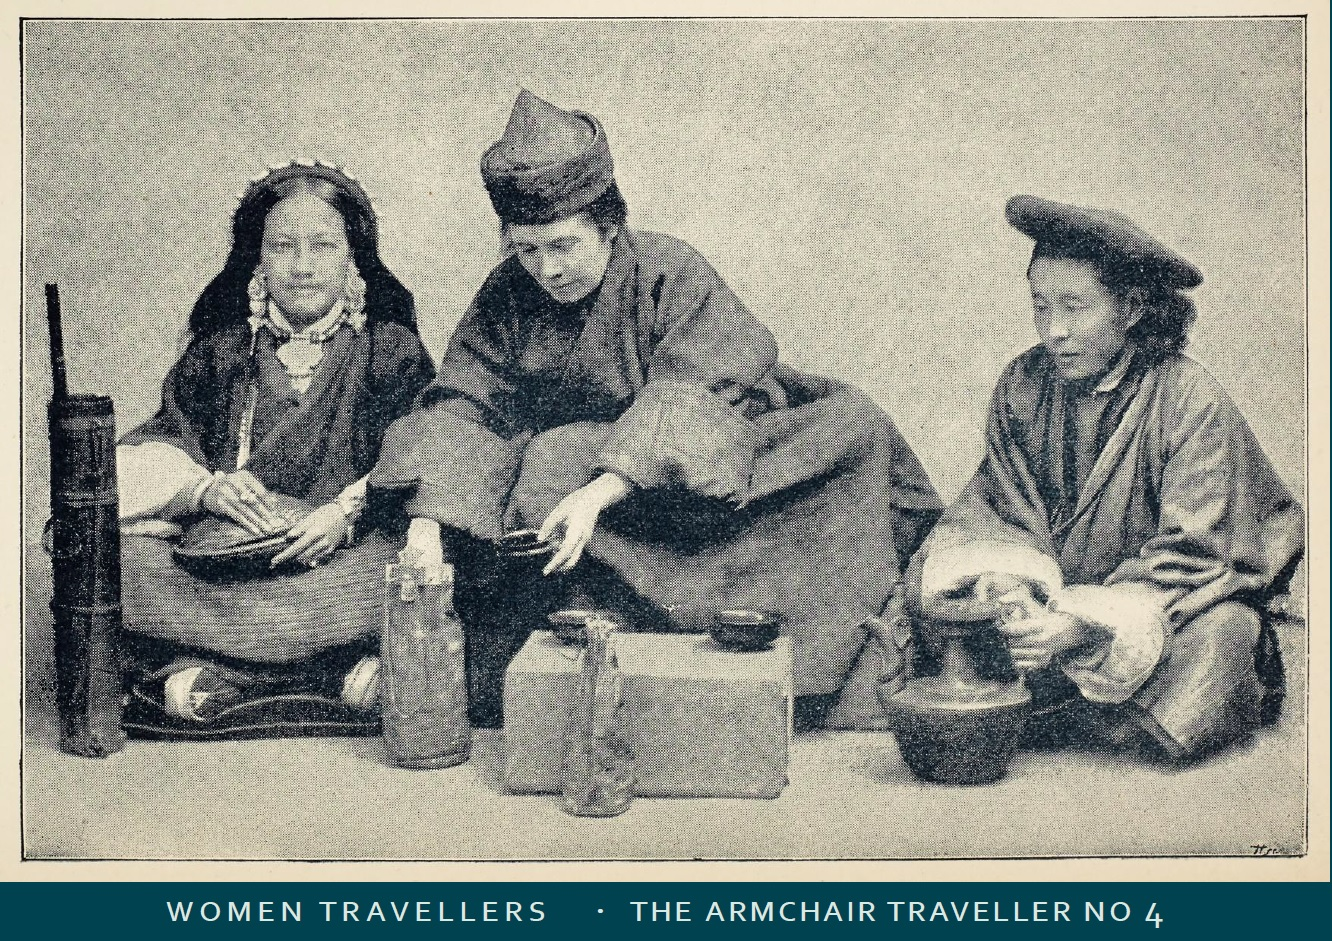 The Armchair Traveller: Women Travellers